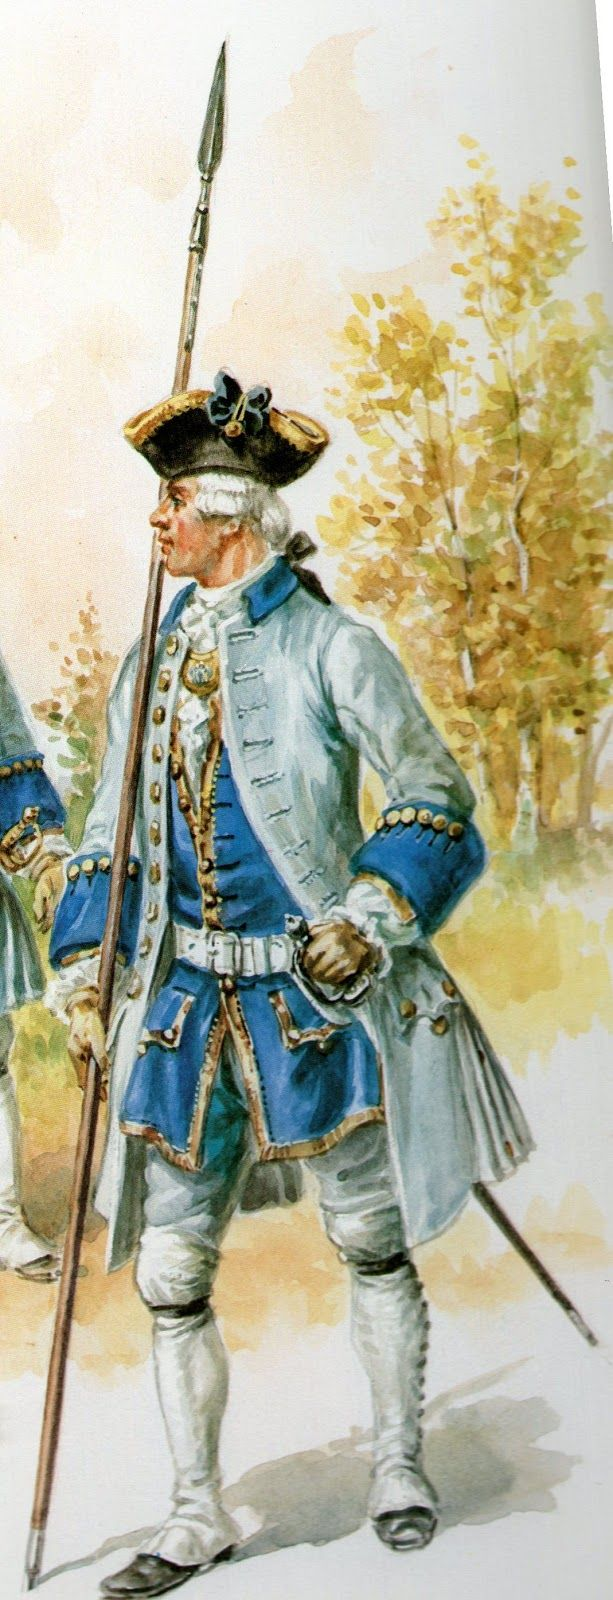 French Infantry Officer, Seven Years War